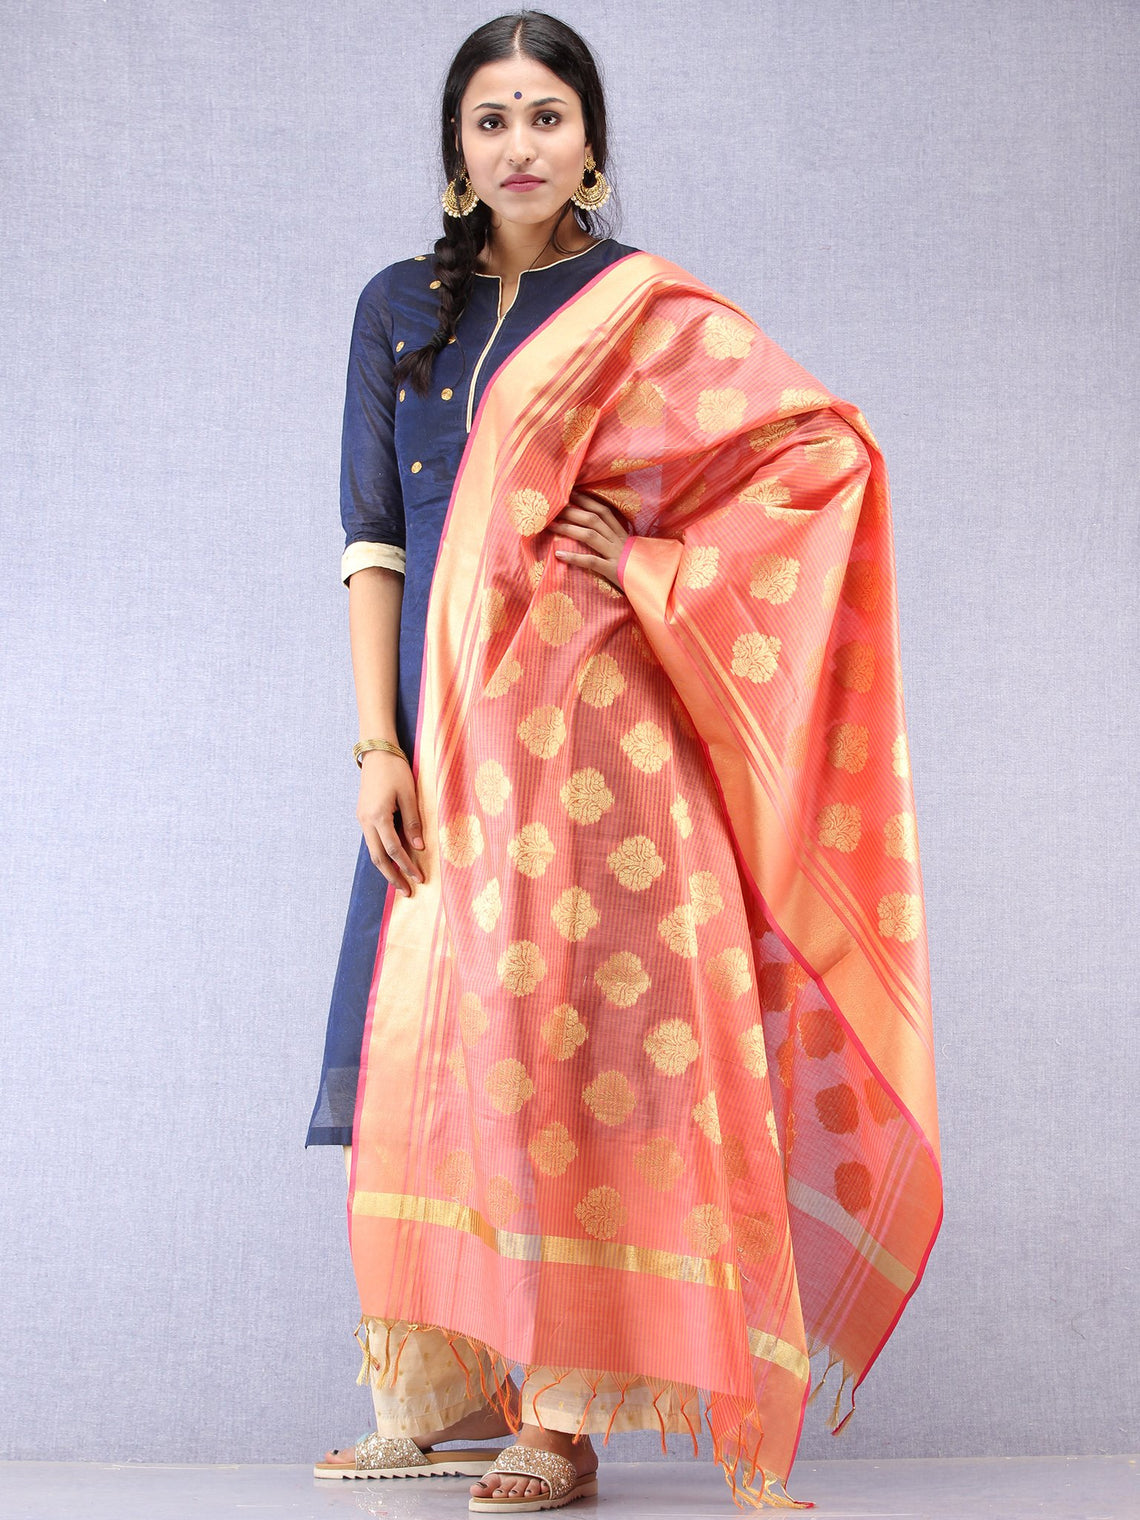 Banarasi Chanderi Dupatta With Zari Work - Coral & Gold - D04170828